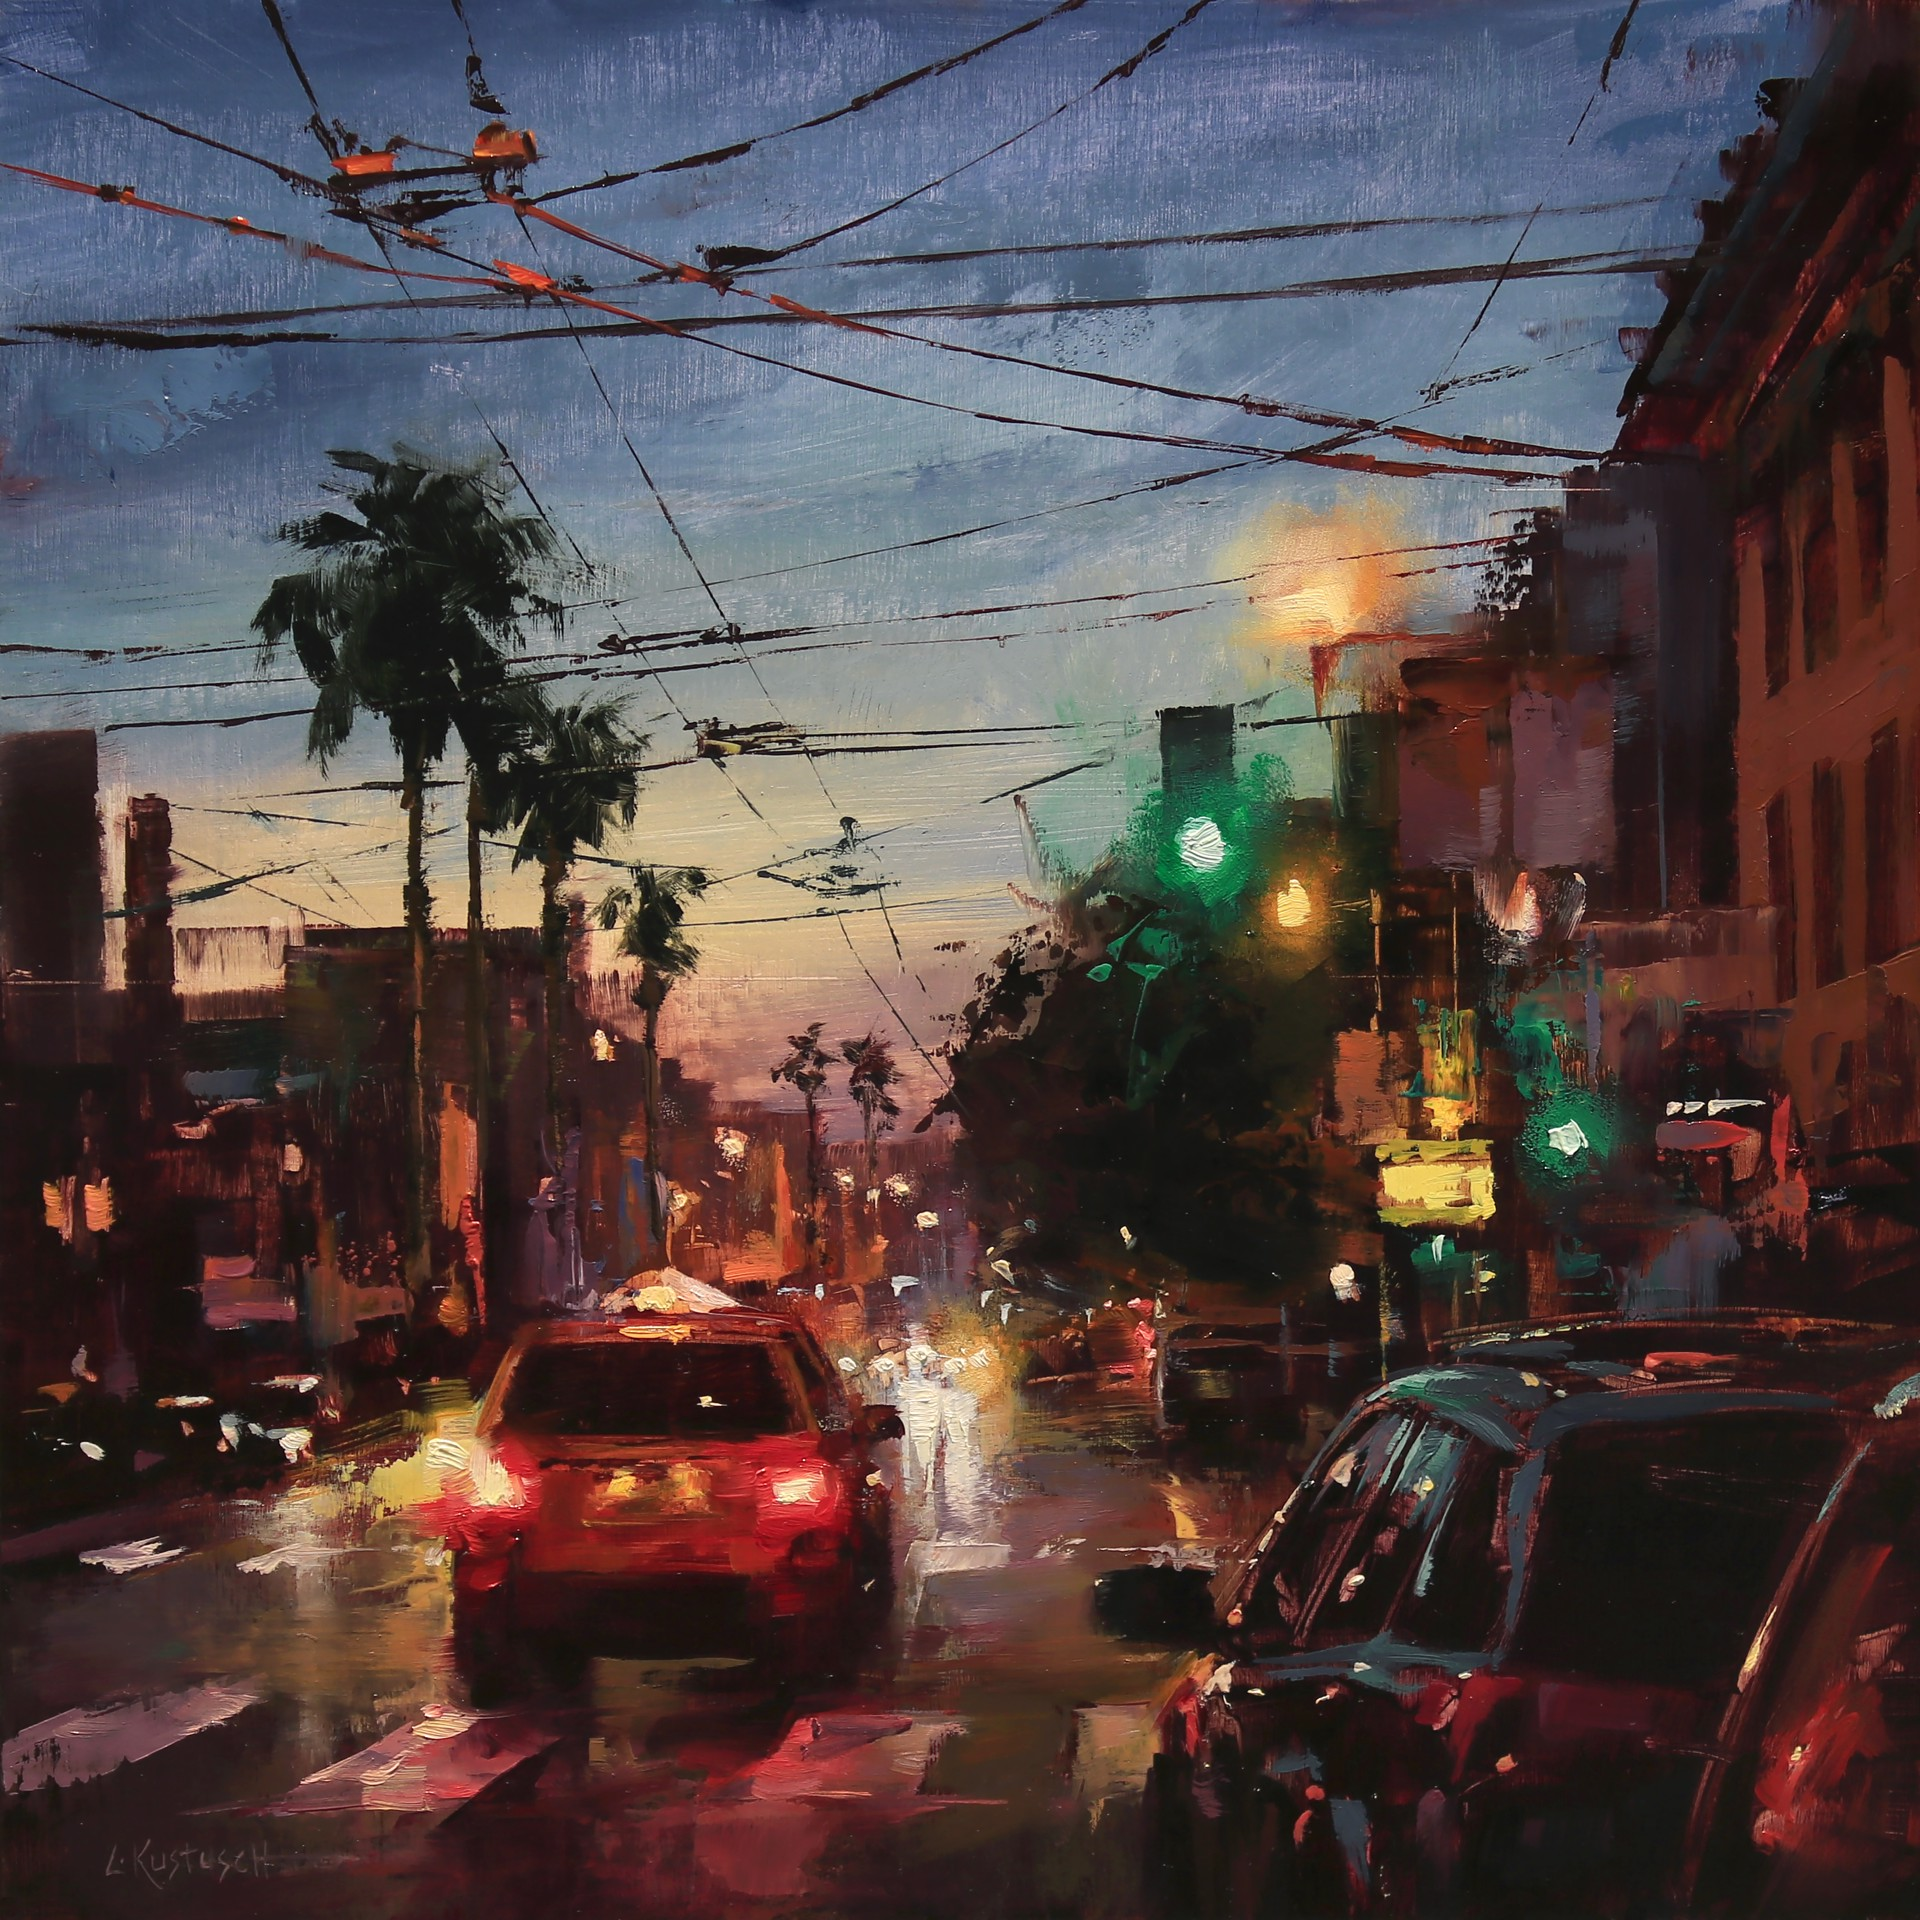 Warm Night in the Mission by Lindsey Kustusch